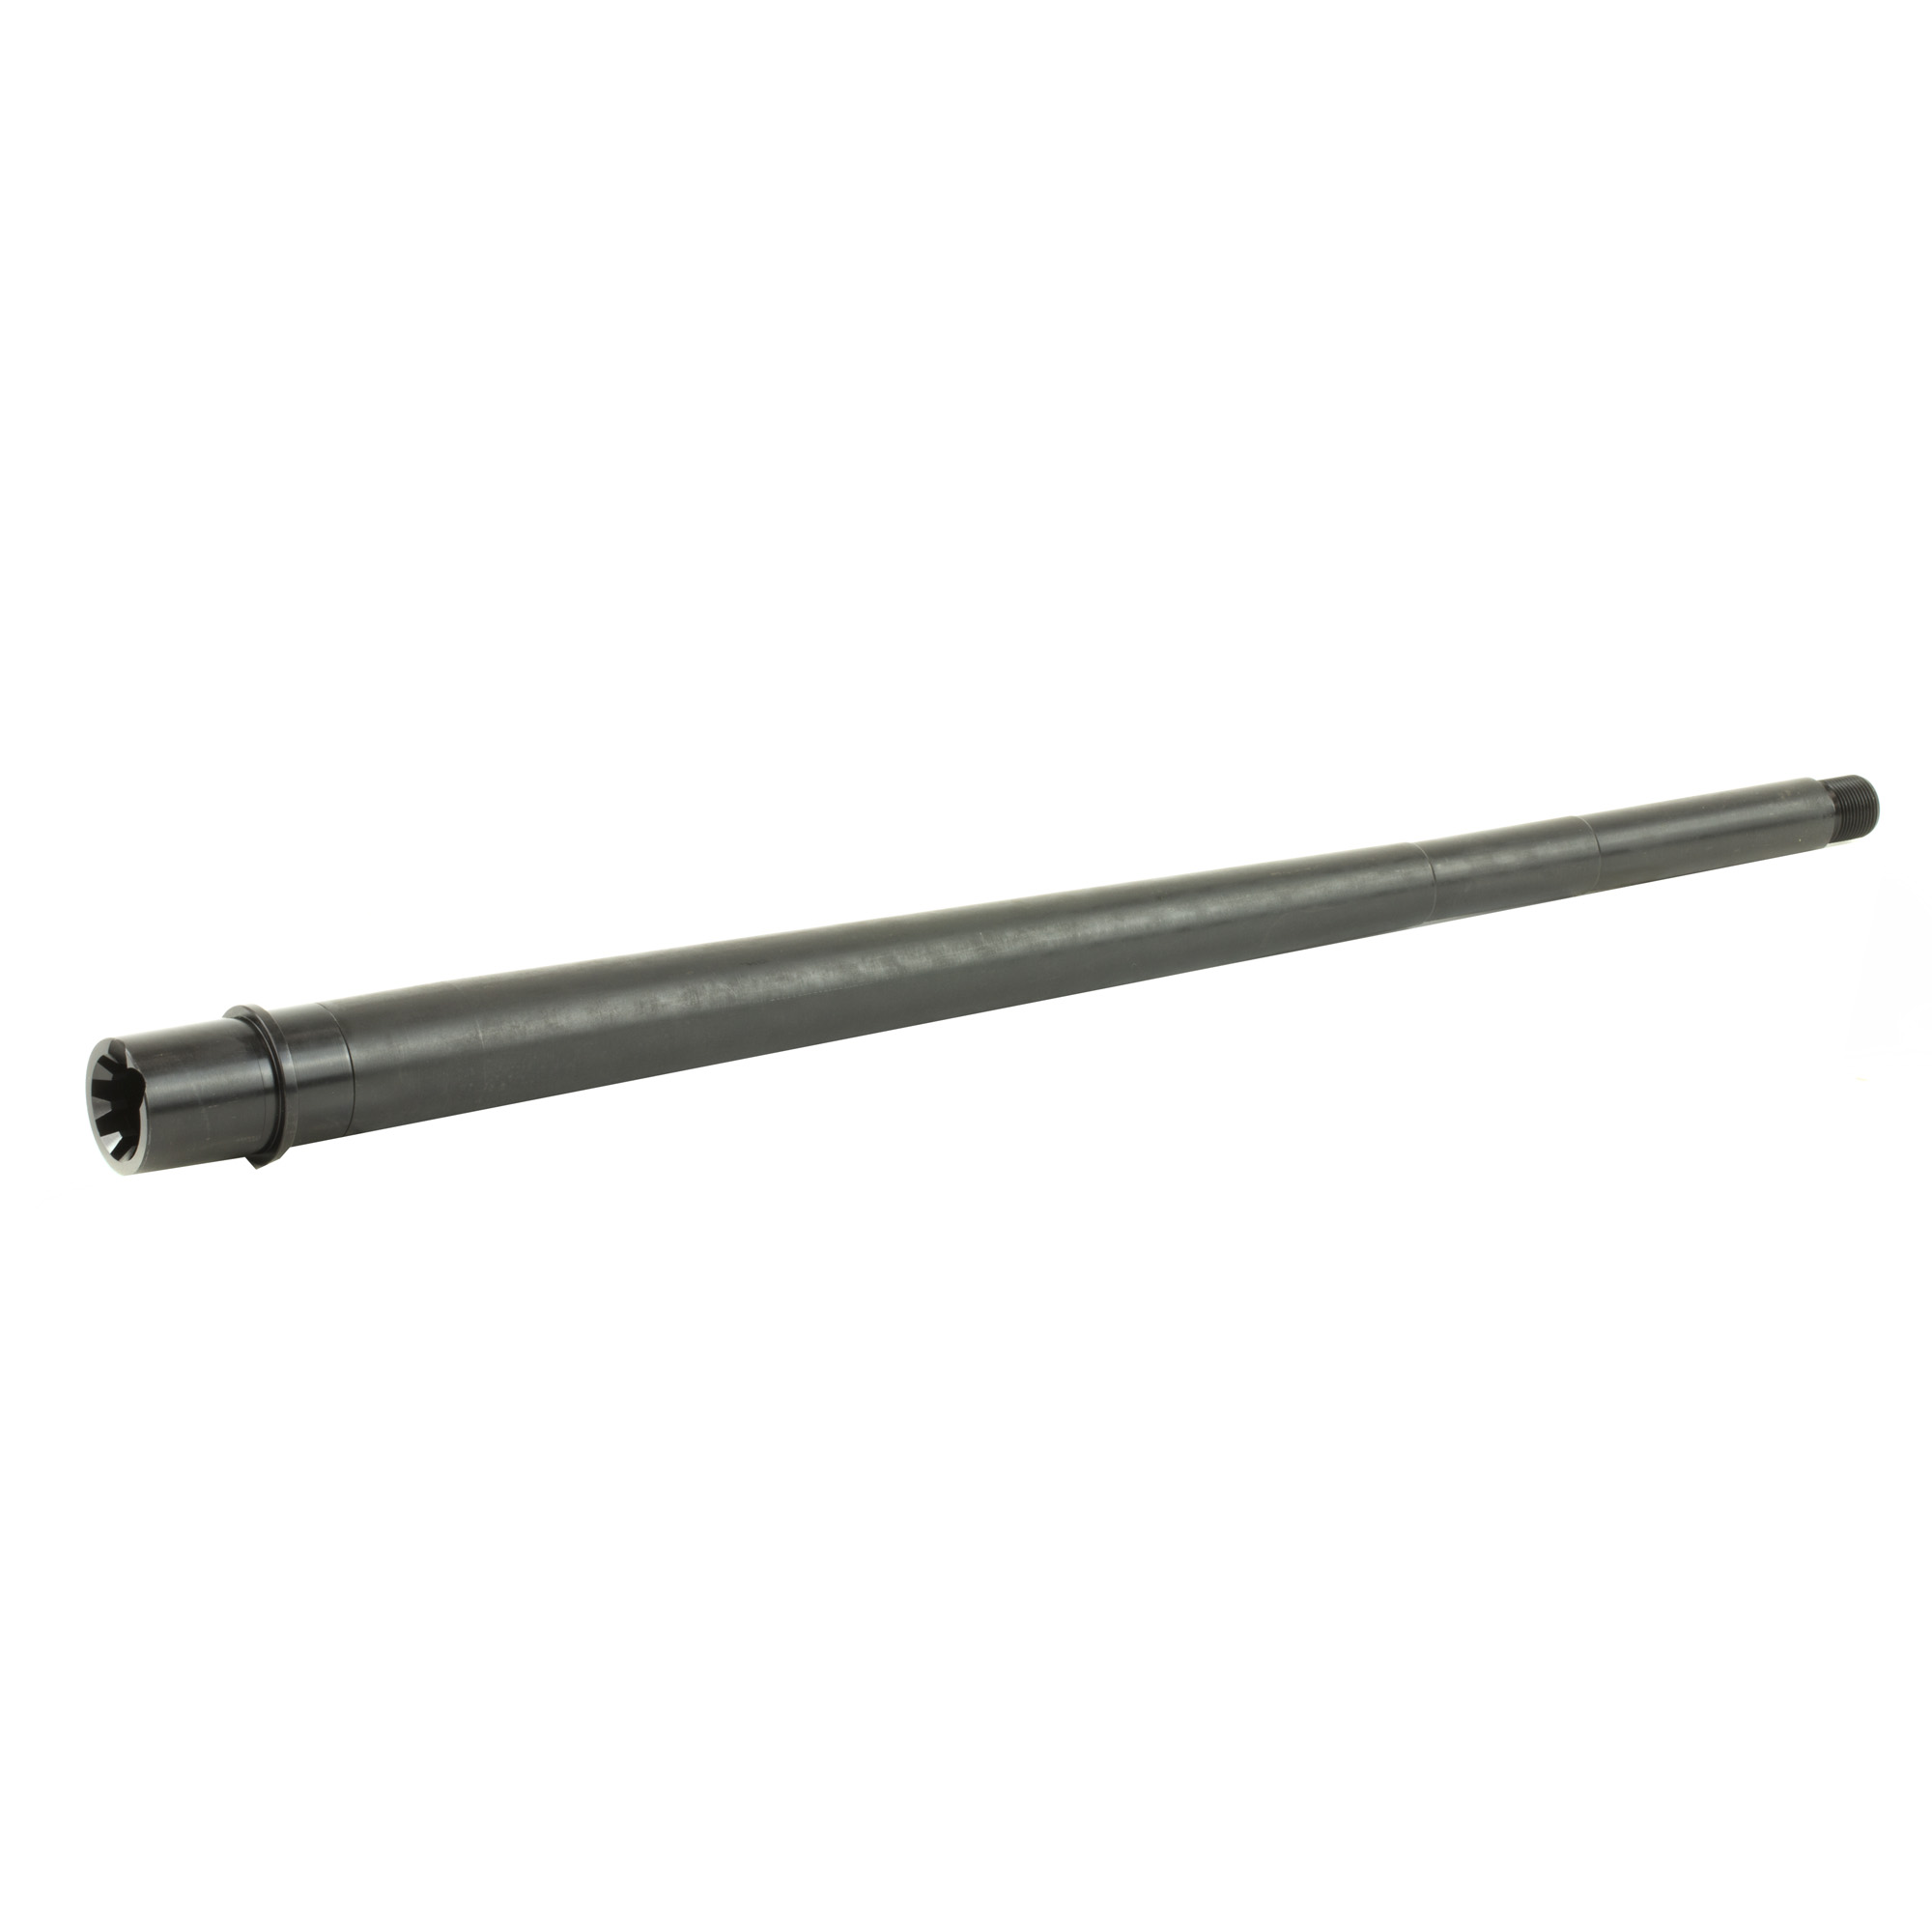 This .308 chambered (DPMS style) 18 inch Heavy Profile Modern Series Barrel is machined from 4150 Chrome Moly Vanadium steel with a QPQ Corrosion Resistant Finish and QPQ coated M4 feed ramp extension.